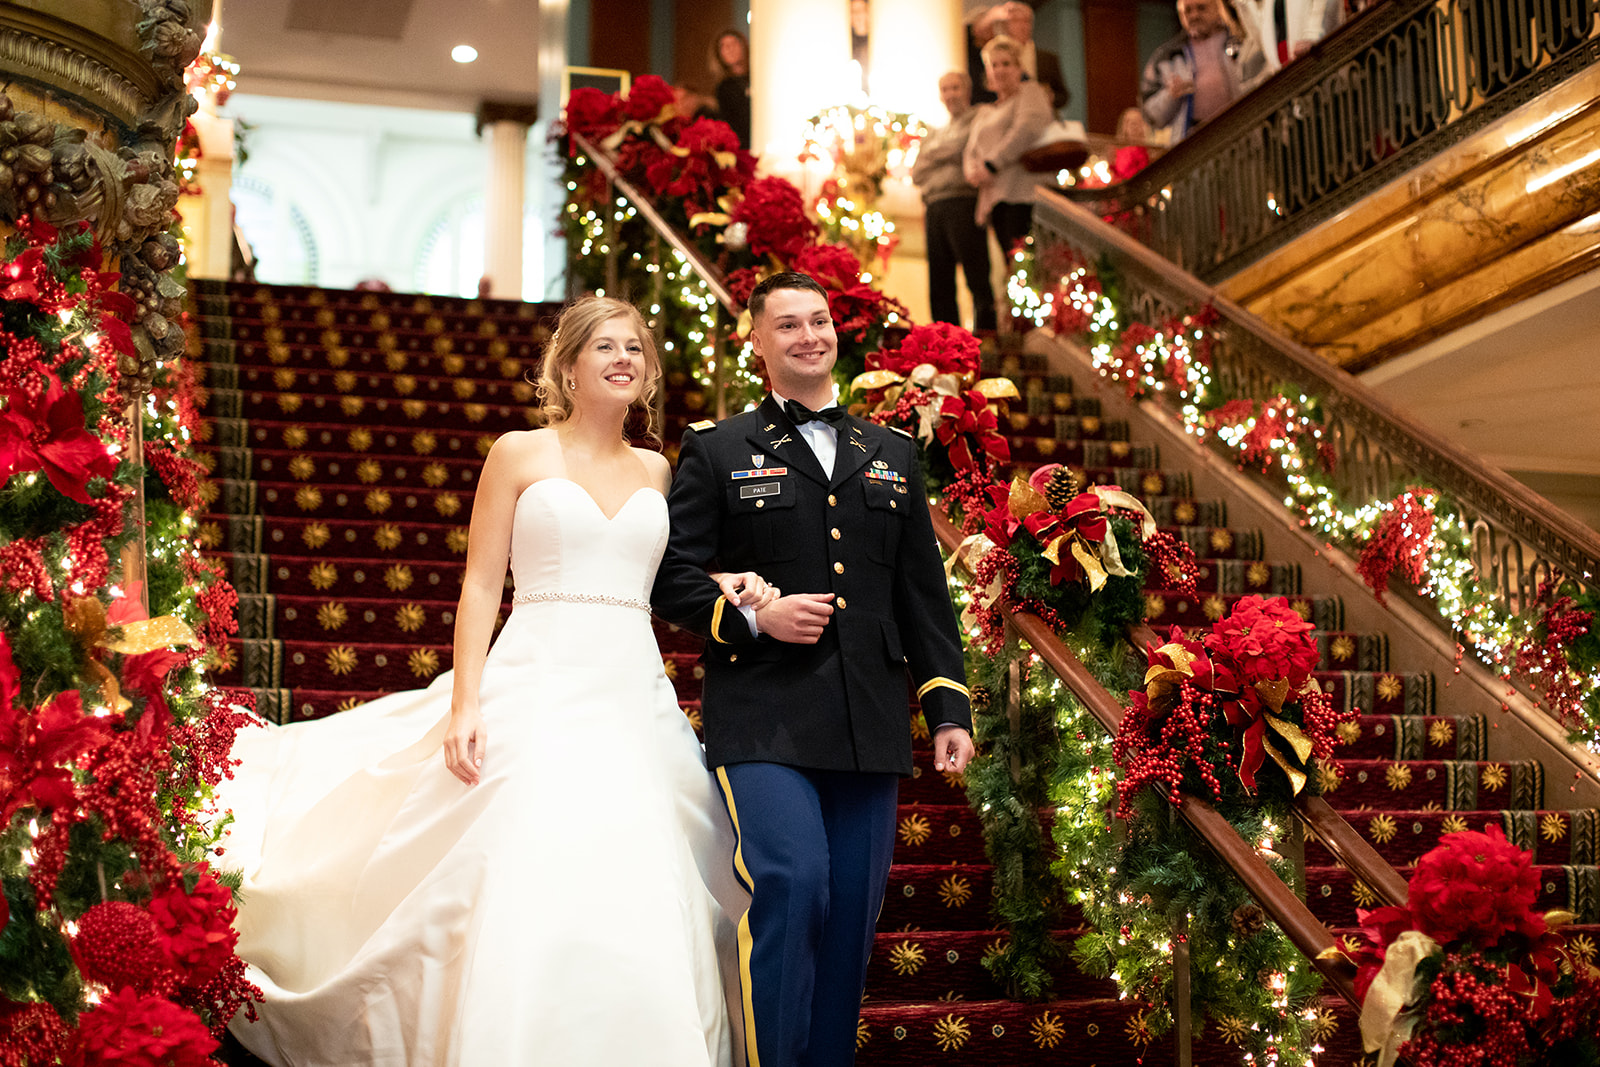 Holly  Elliotts Holiday Wedding at The Jefferson Hotel - Image Property of www.j-dphoto.com